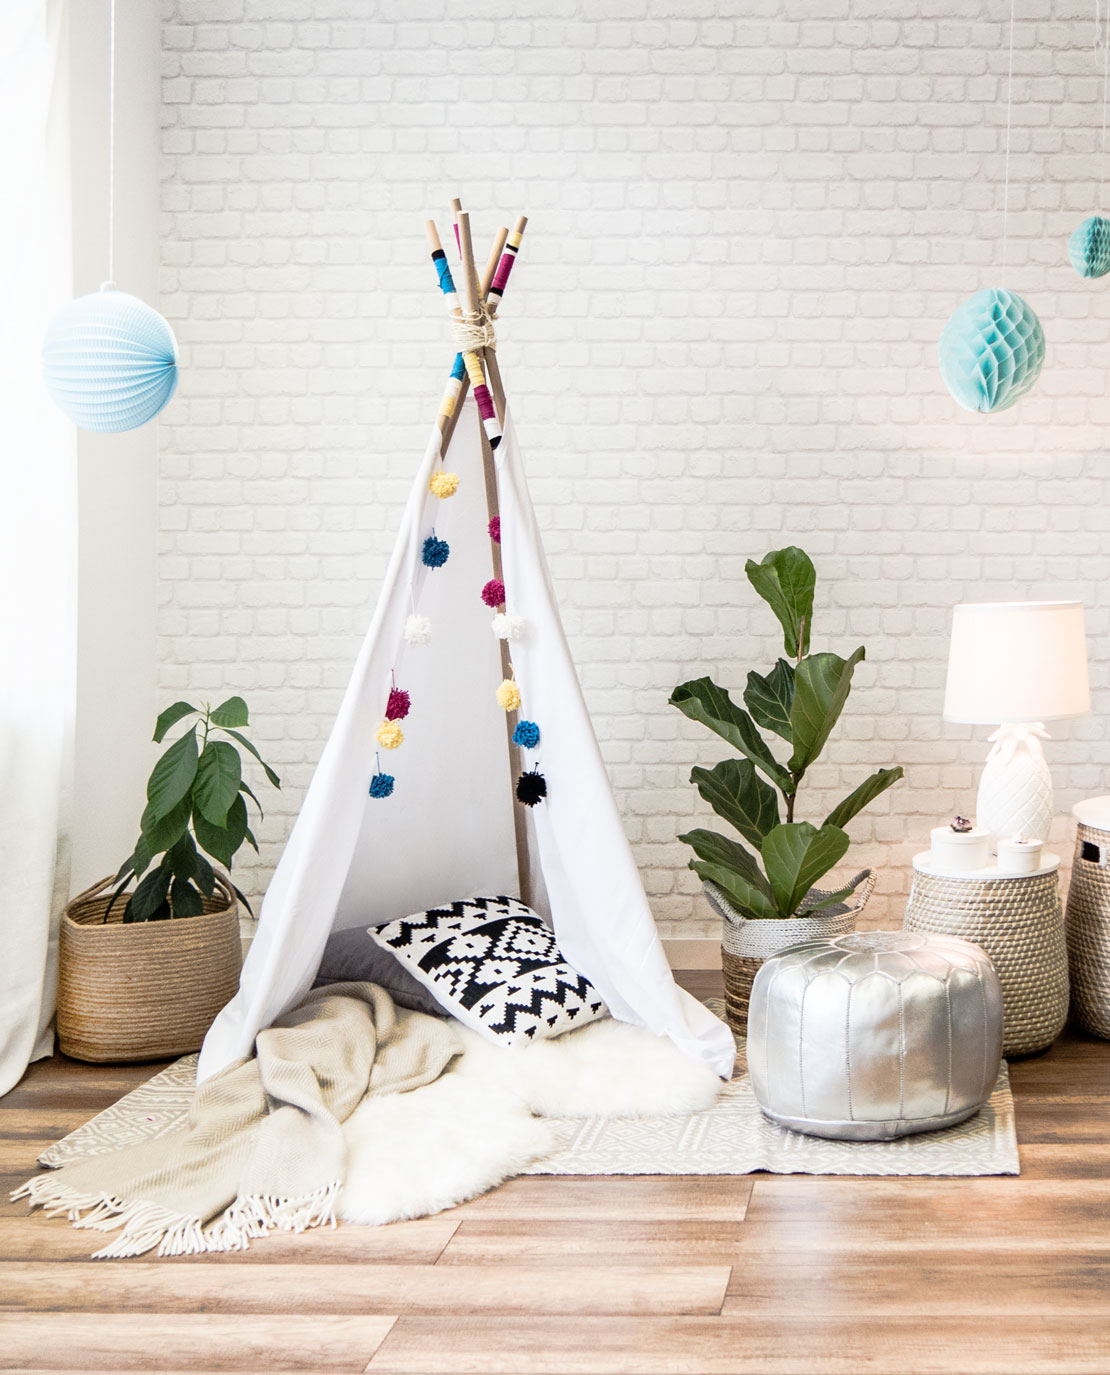 Westwing-DIY-Tipi-Pflanzen